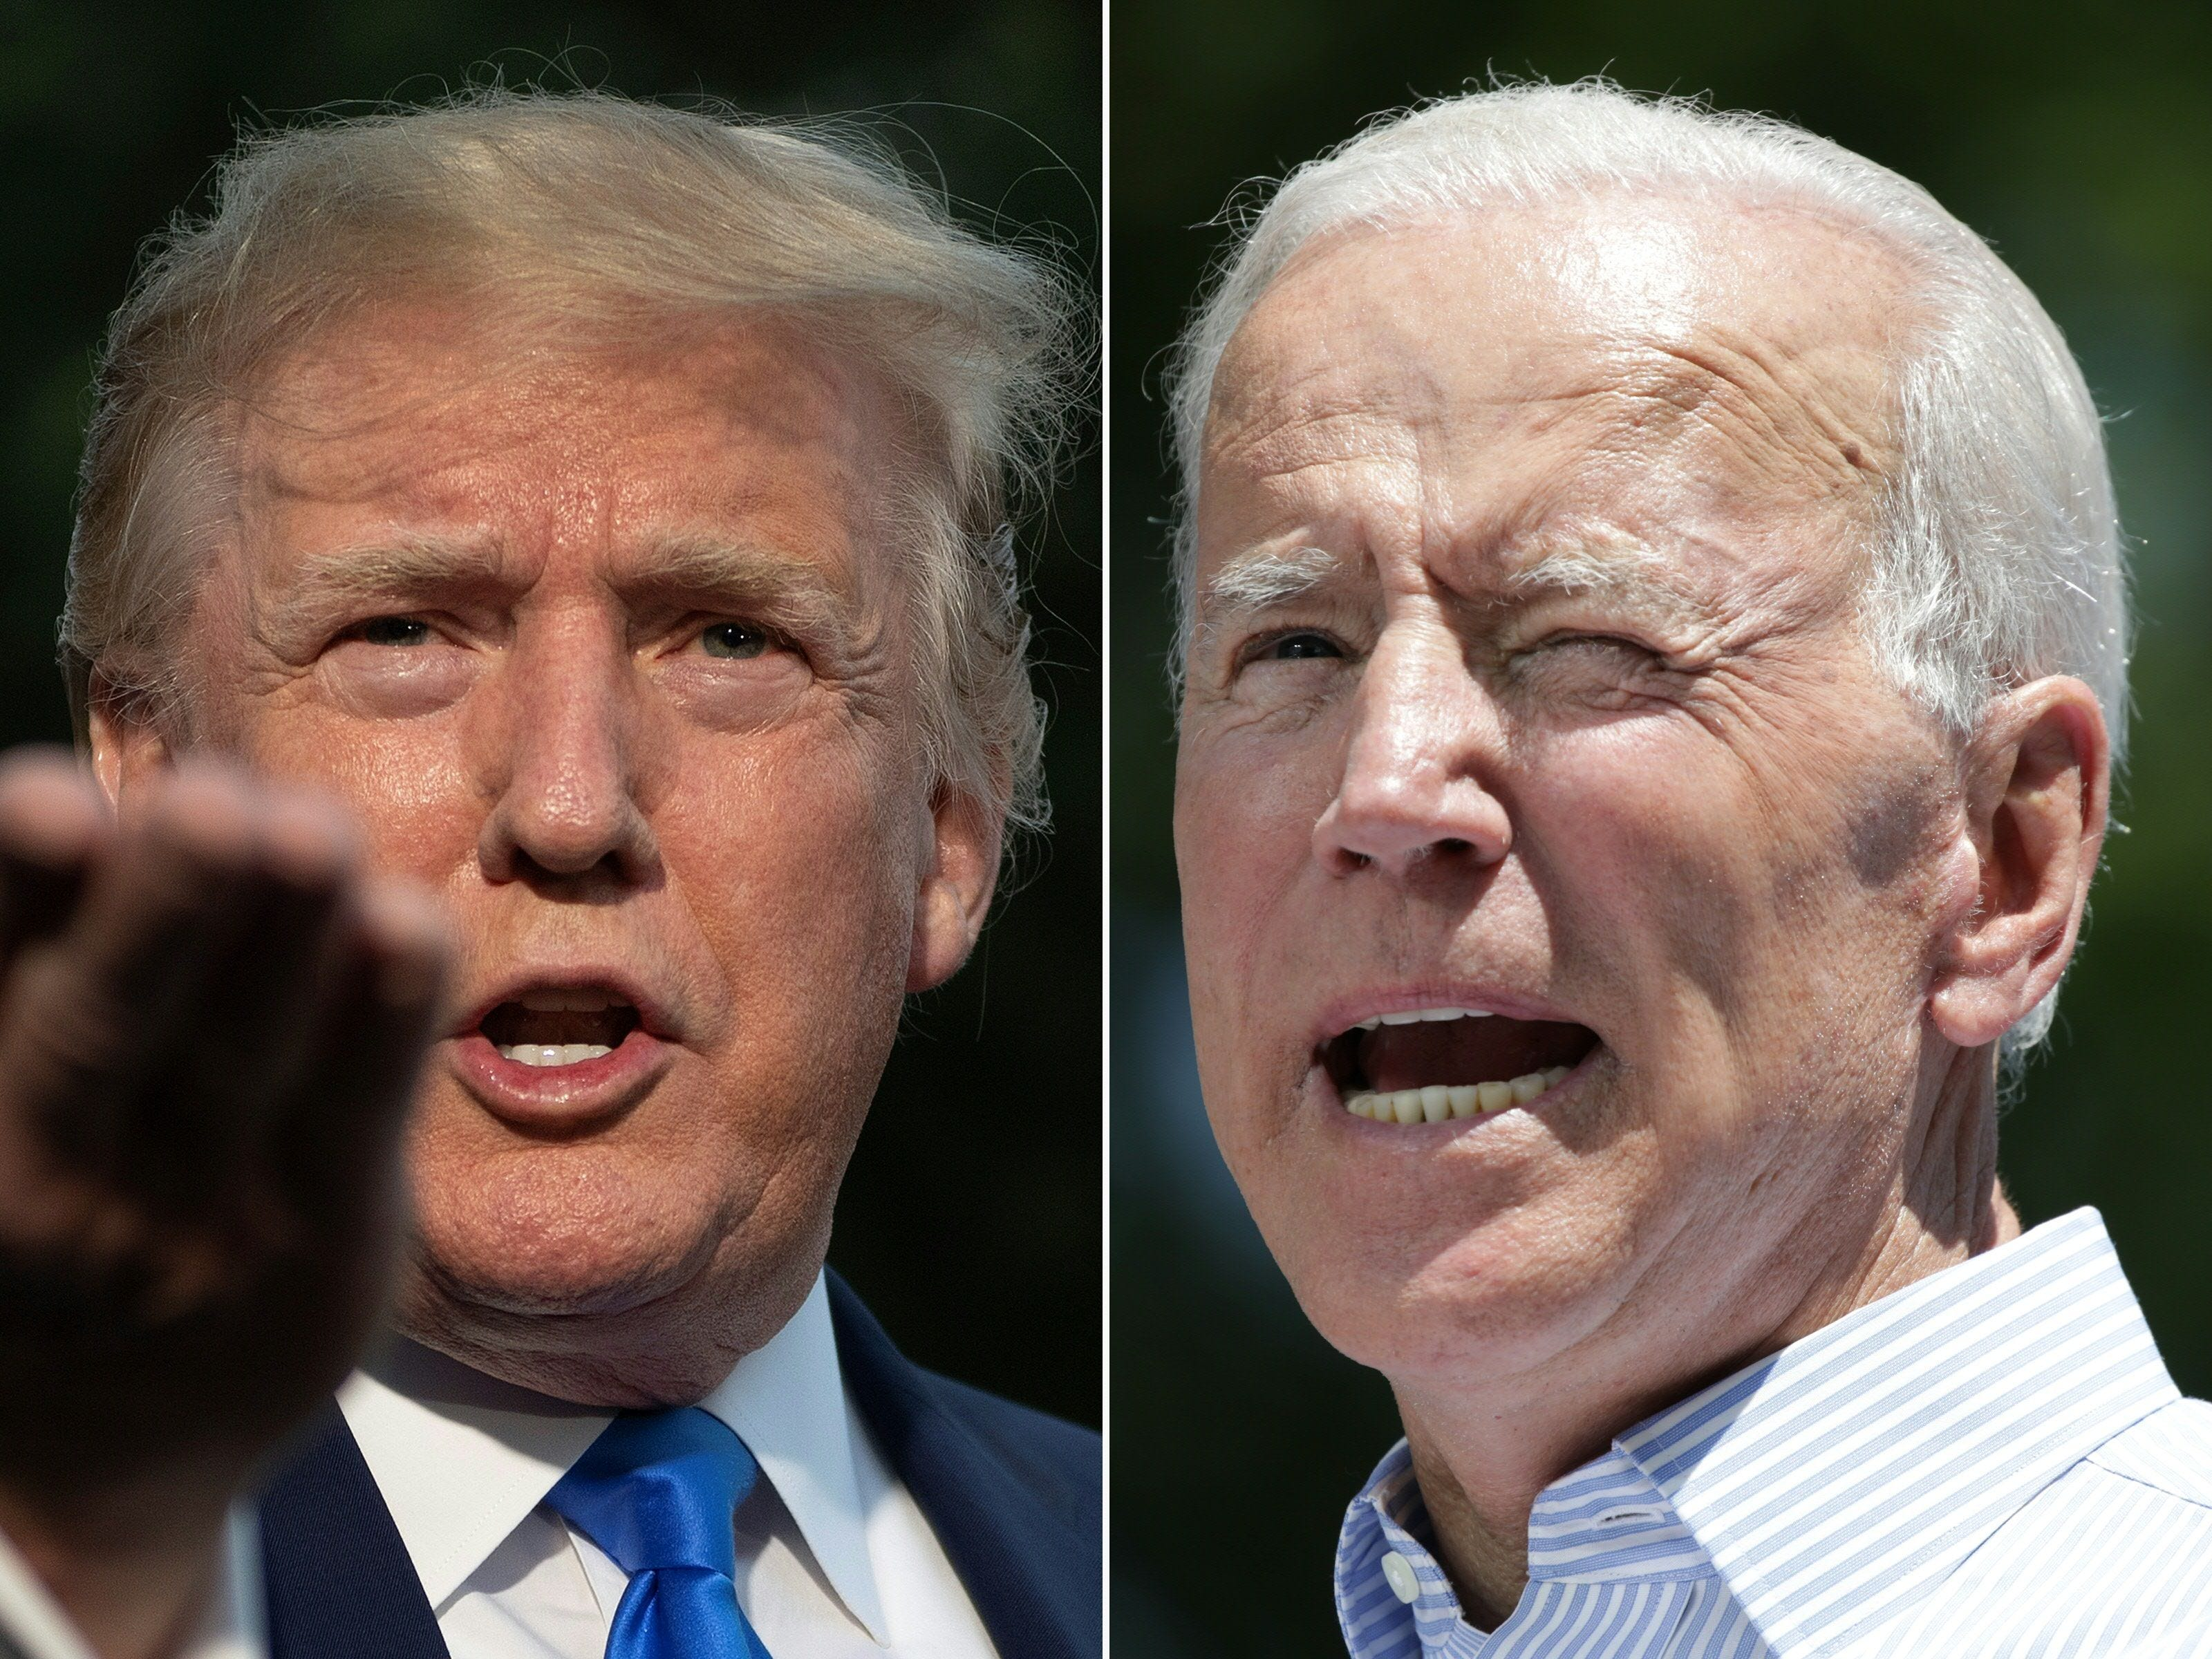 Poll: Biden leads Trump by 13 percentage points nationally in head-to-head matchup